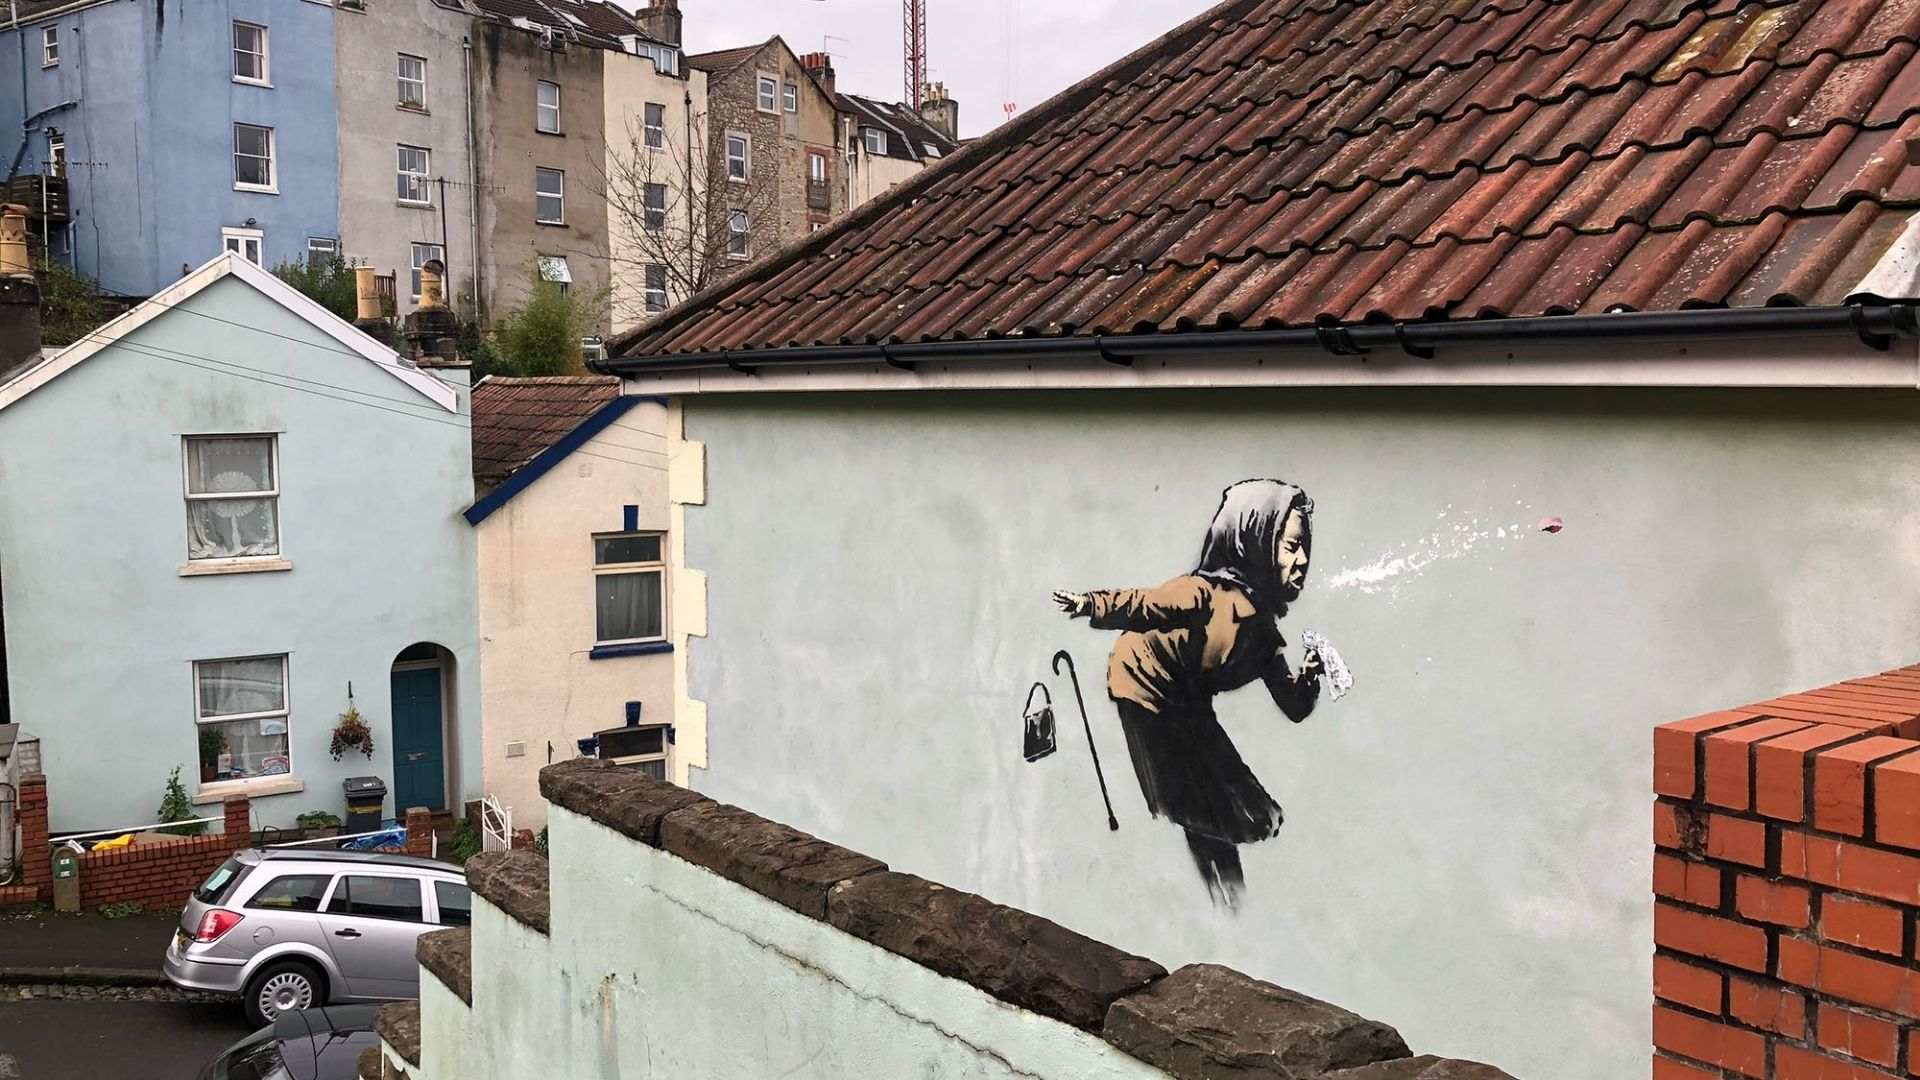 Photo of the Banksy piece 'Aachoo!!' on a house on Vale Street in Totterdown, Bristol